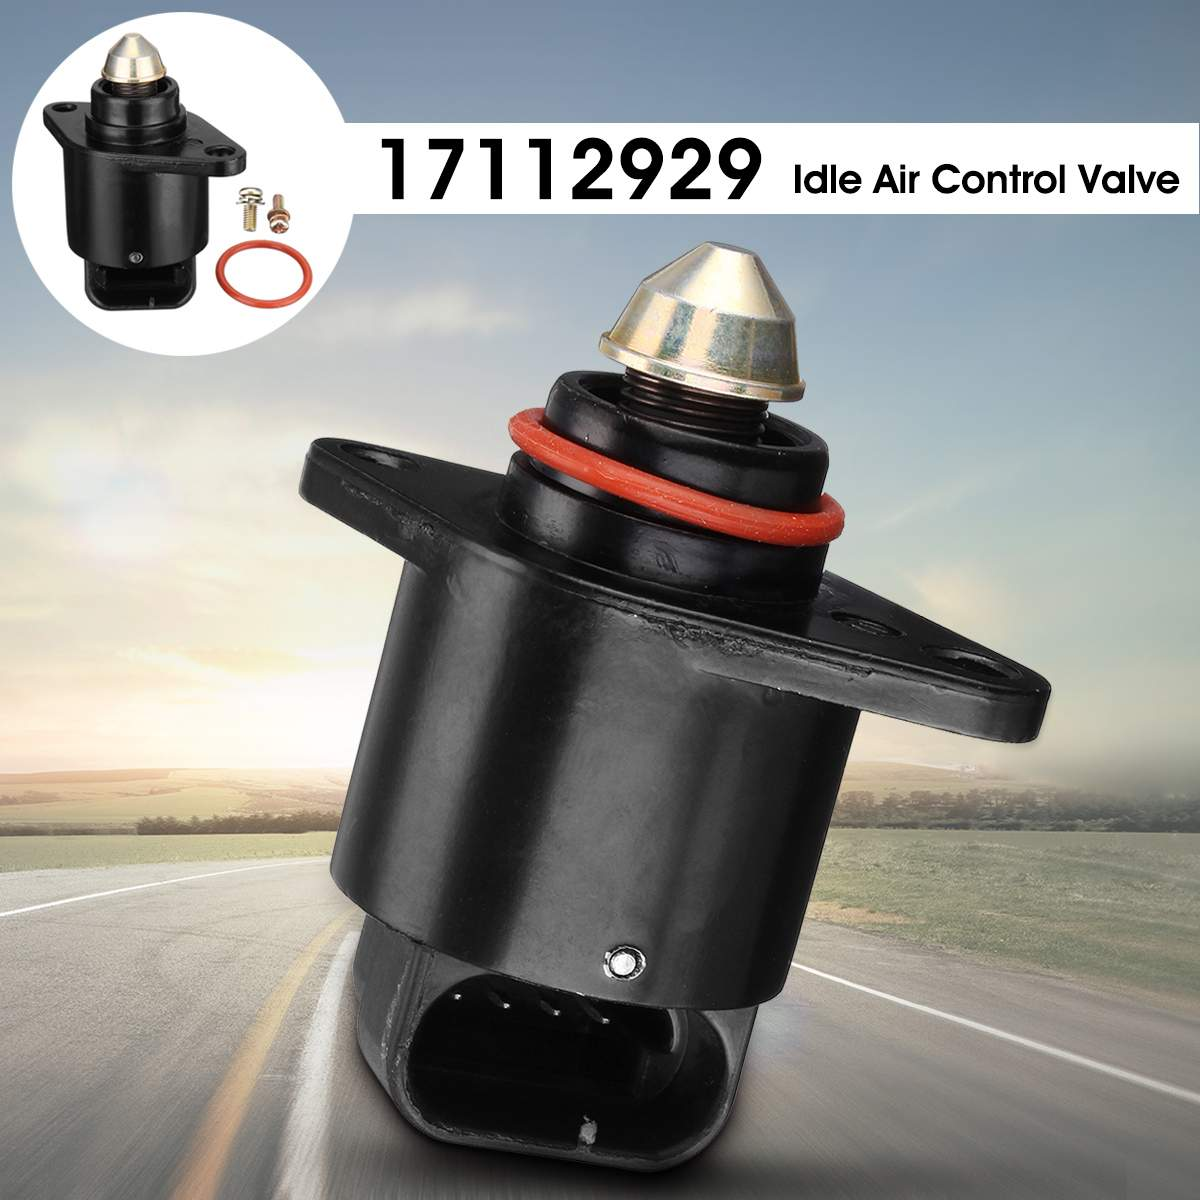 Idle Air Control Valve For Buick For Chevrolet For Pontiac For Oldsmobile 3.8L AC27 2H1039 217422,17112478,17112479,17112649